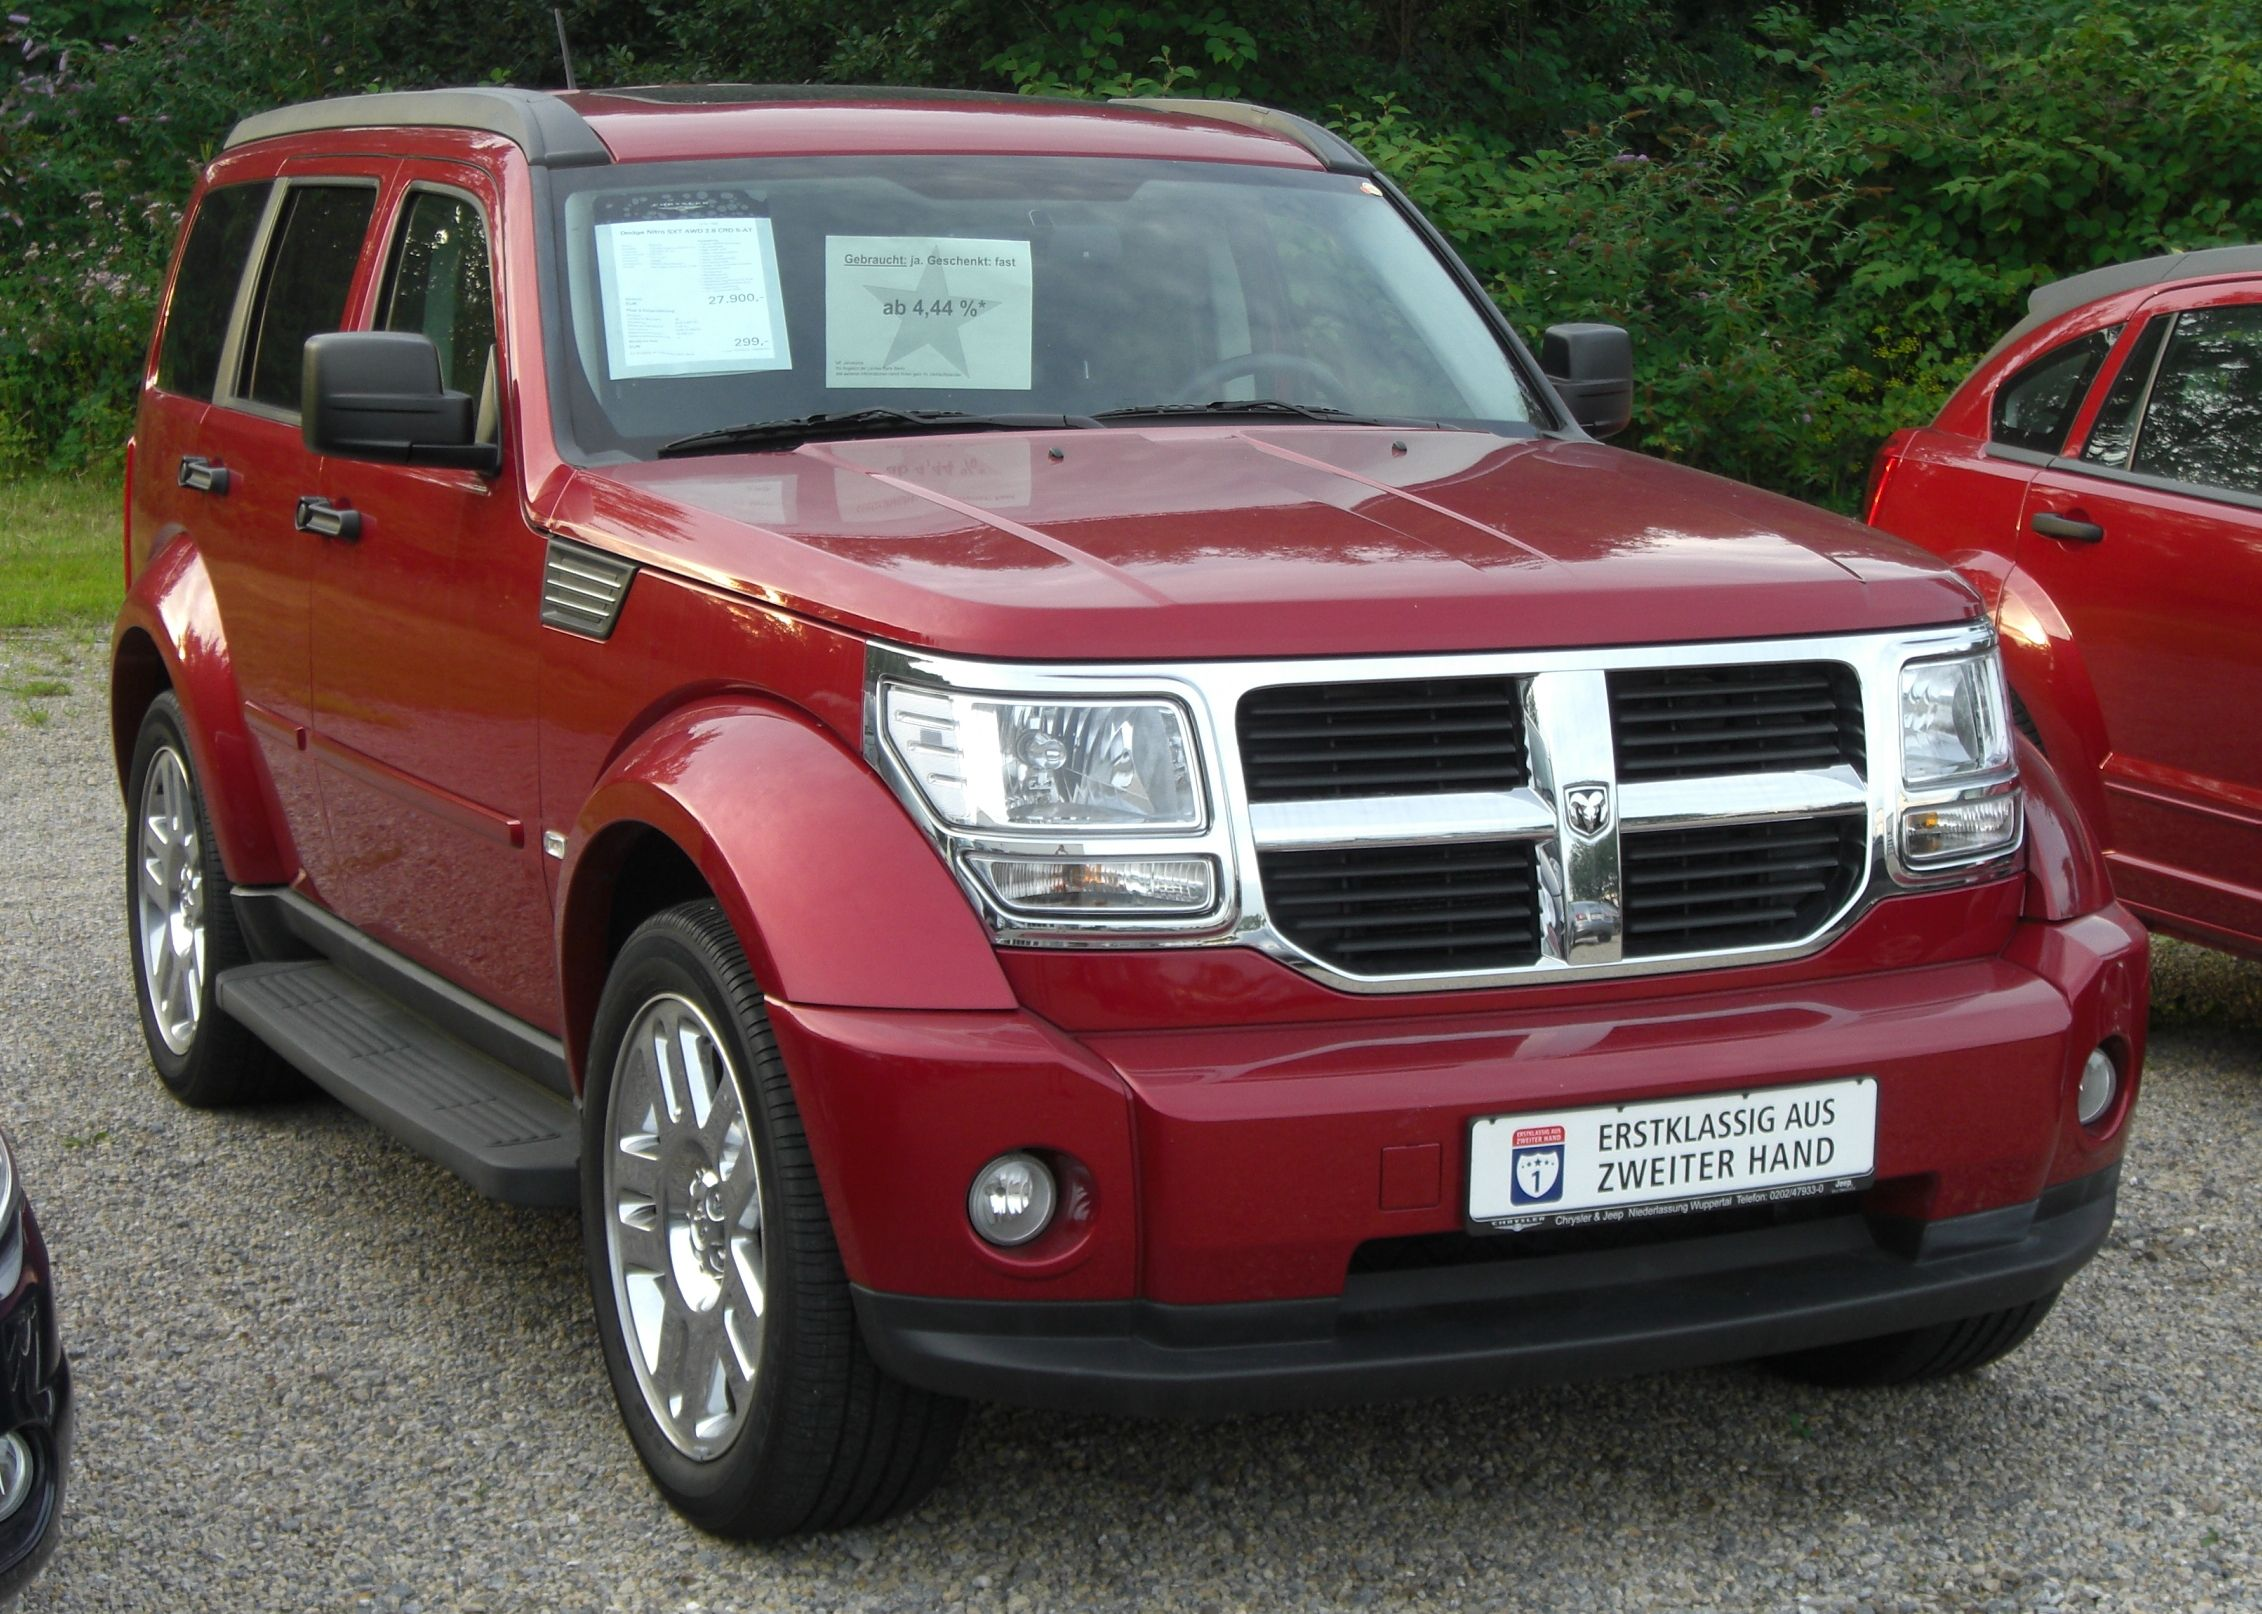 Dodge caliber wikipedia the free encyclopedia wallpapers auto hd wallpapers pinterest wallpapers dodge caliber and repair manuals